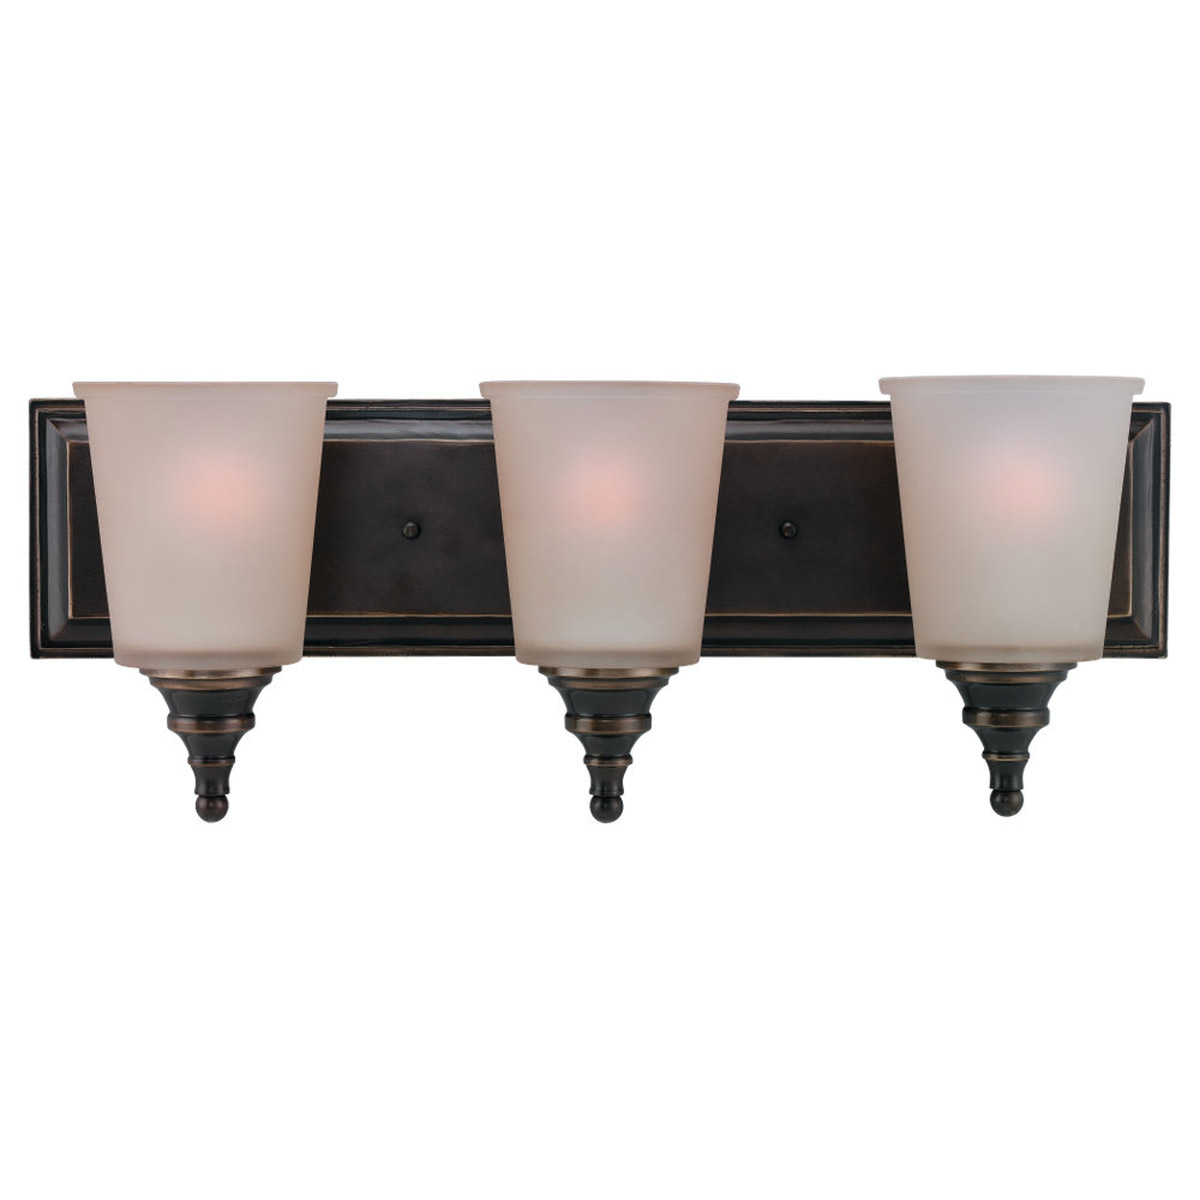 Sea Gull Lighting Warwick 3 Light Bath Vanity in Vintage Bronze 44331-825